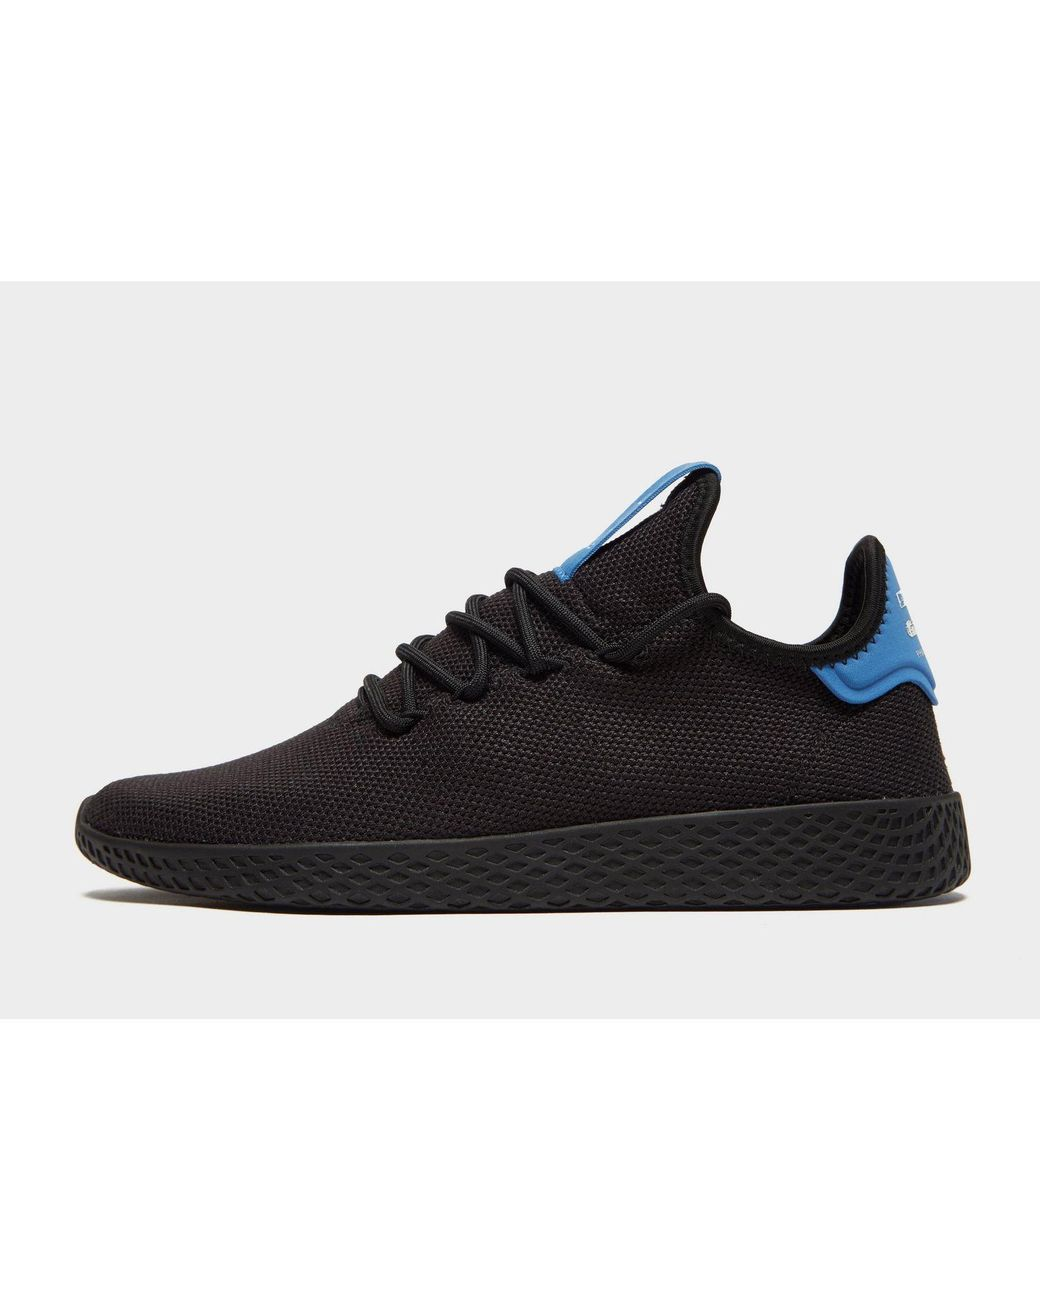 b5106fc11a3be Lyst - adidas Originals X Pharrell Williams Tennis Hu in Black for Men